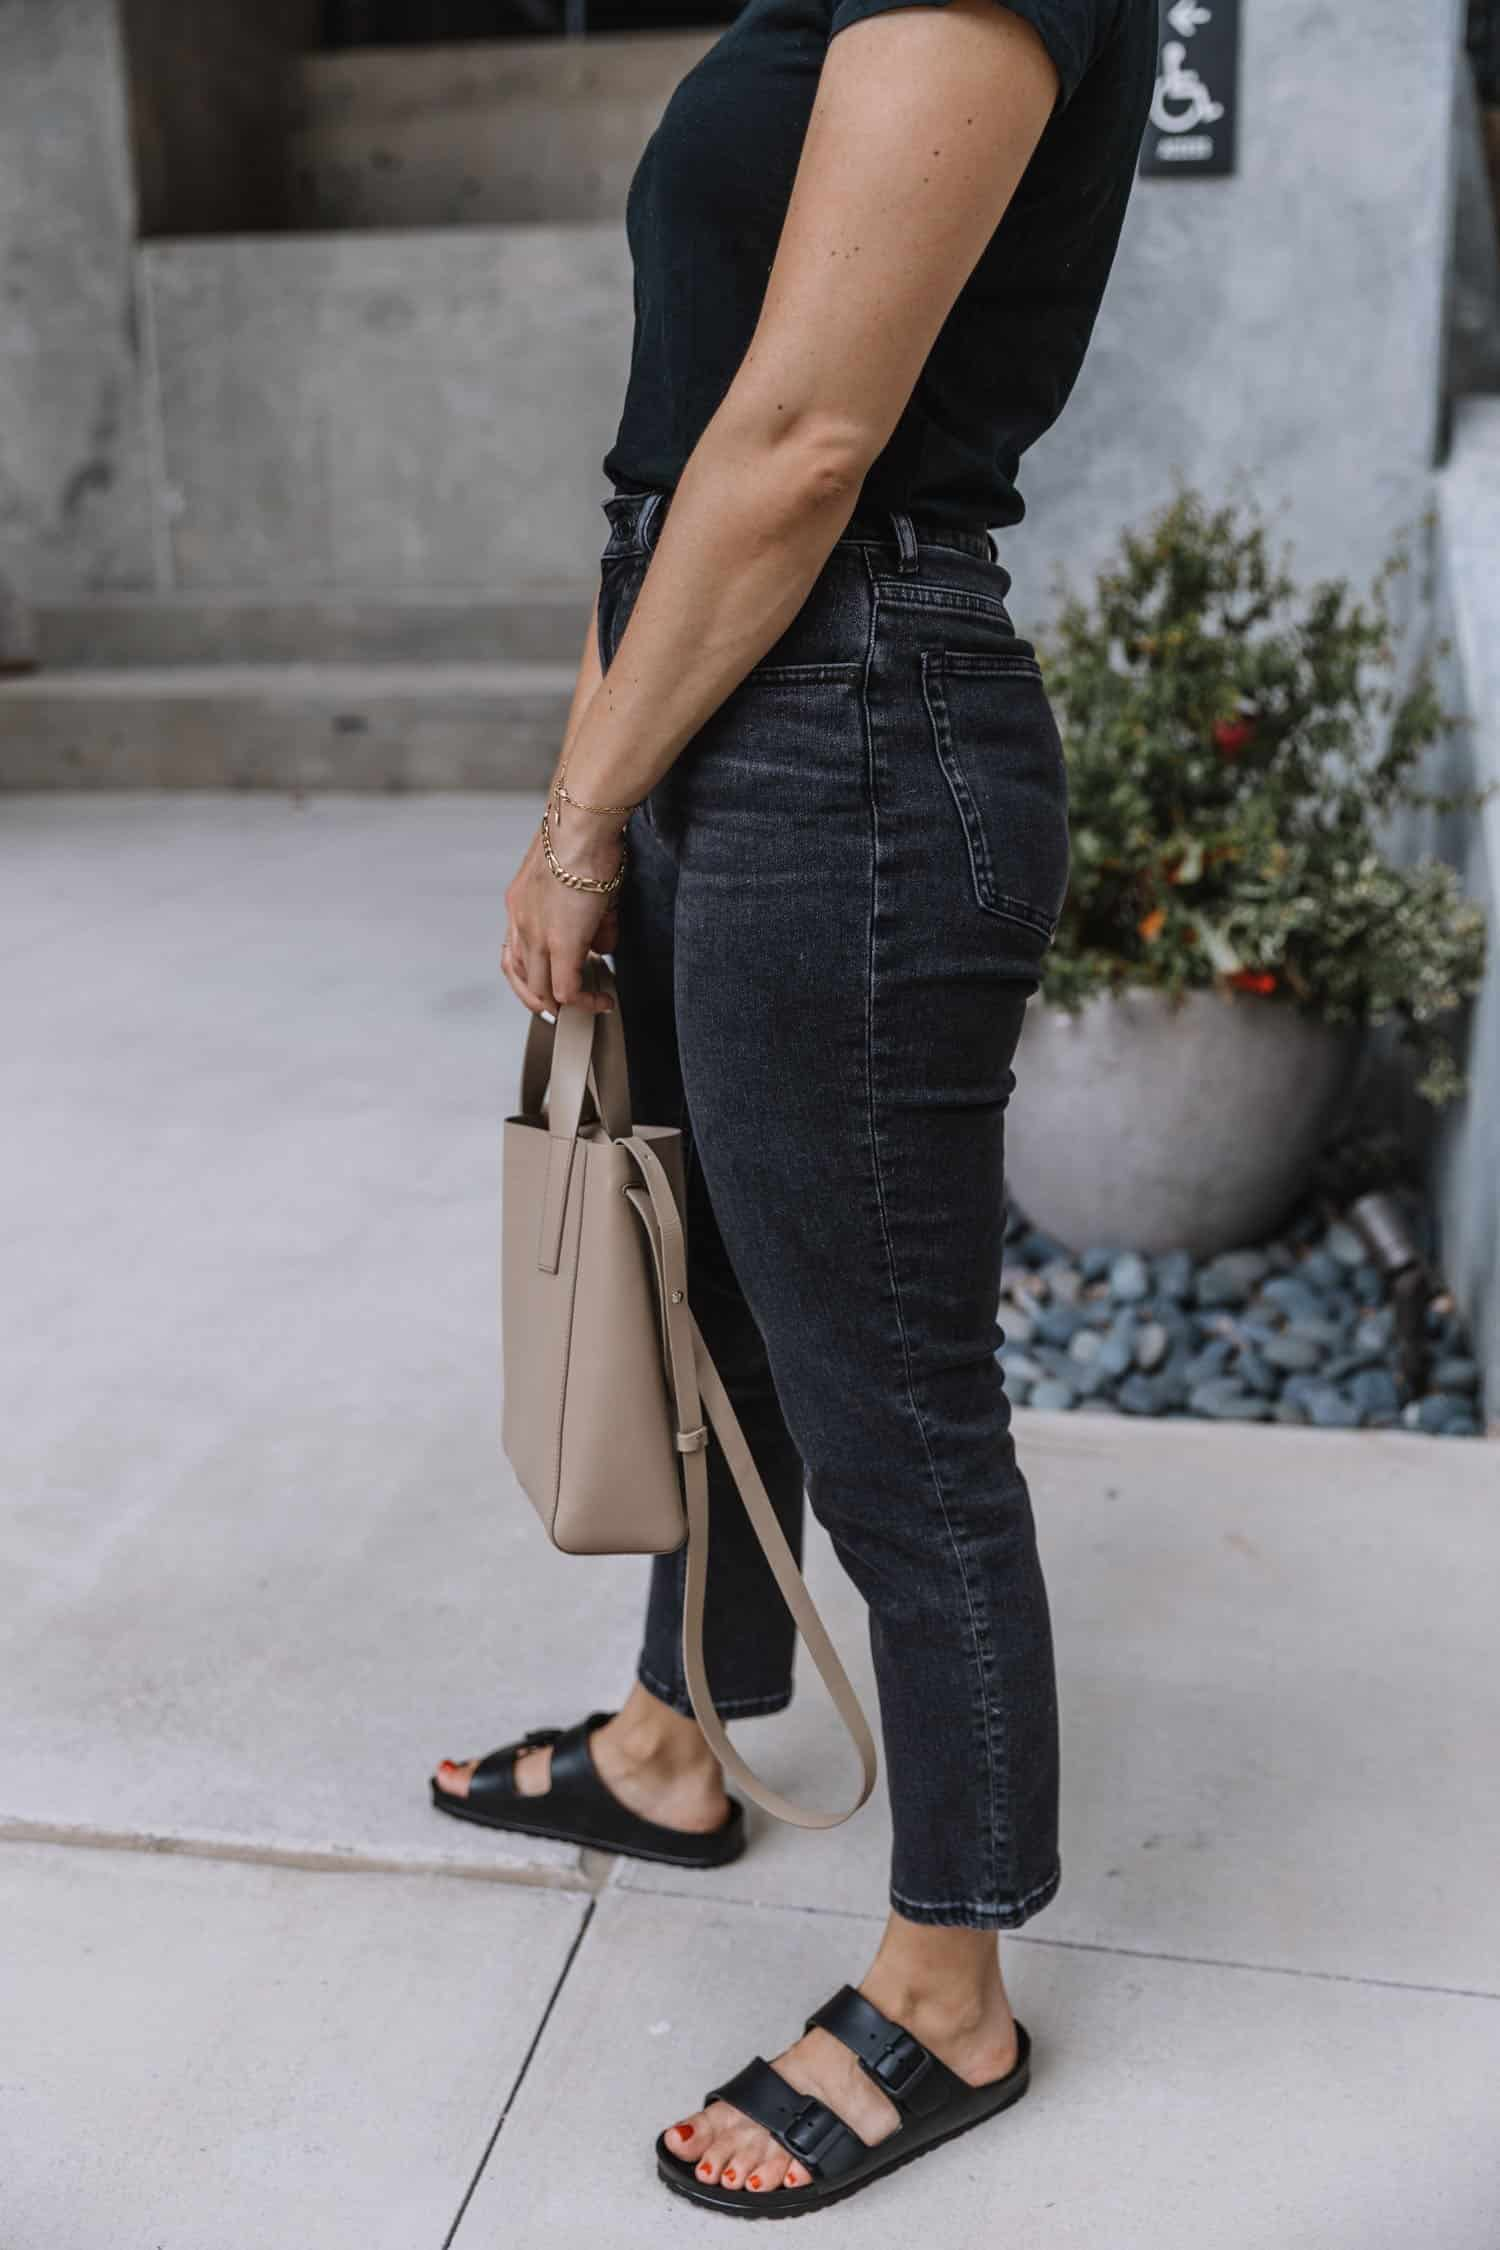 Casual outfit ideas with black jeans and birkenstocks